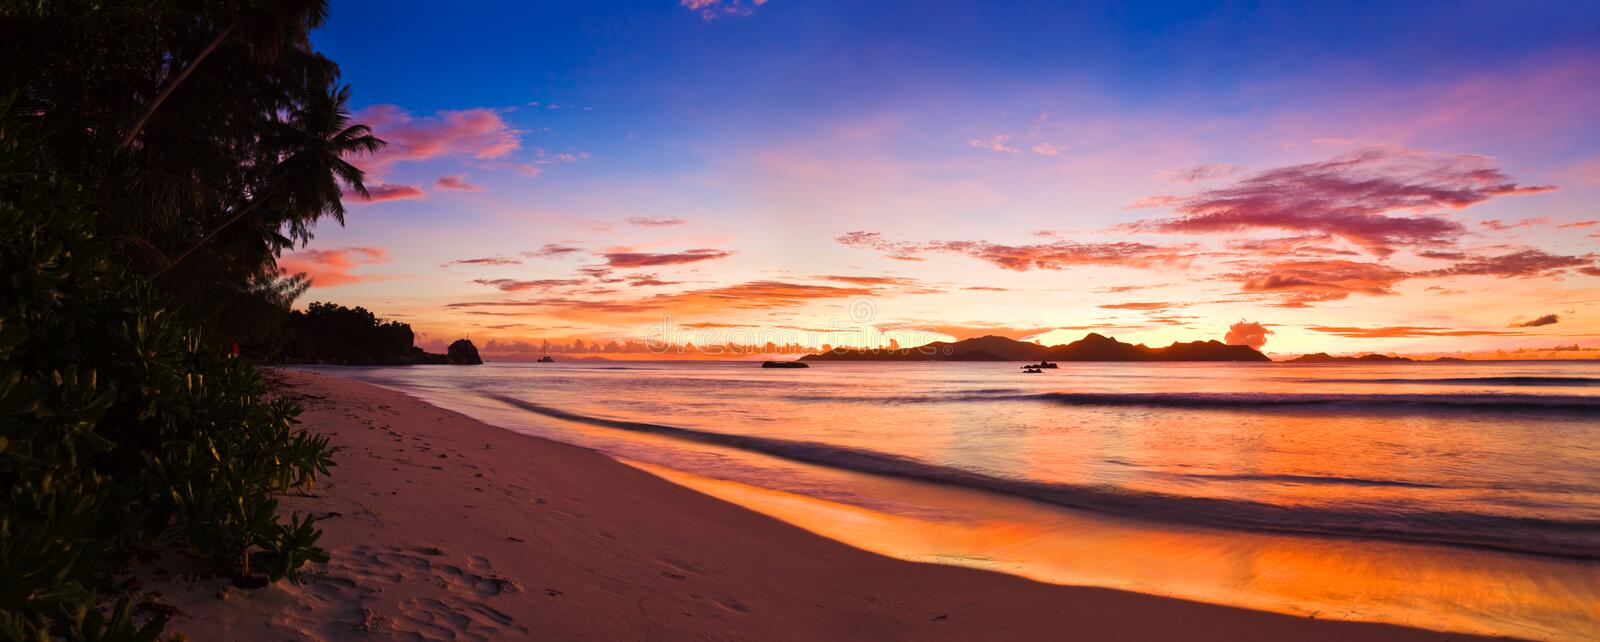 Tropical island at sunset royalty free stock photo